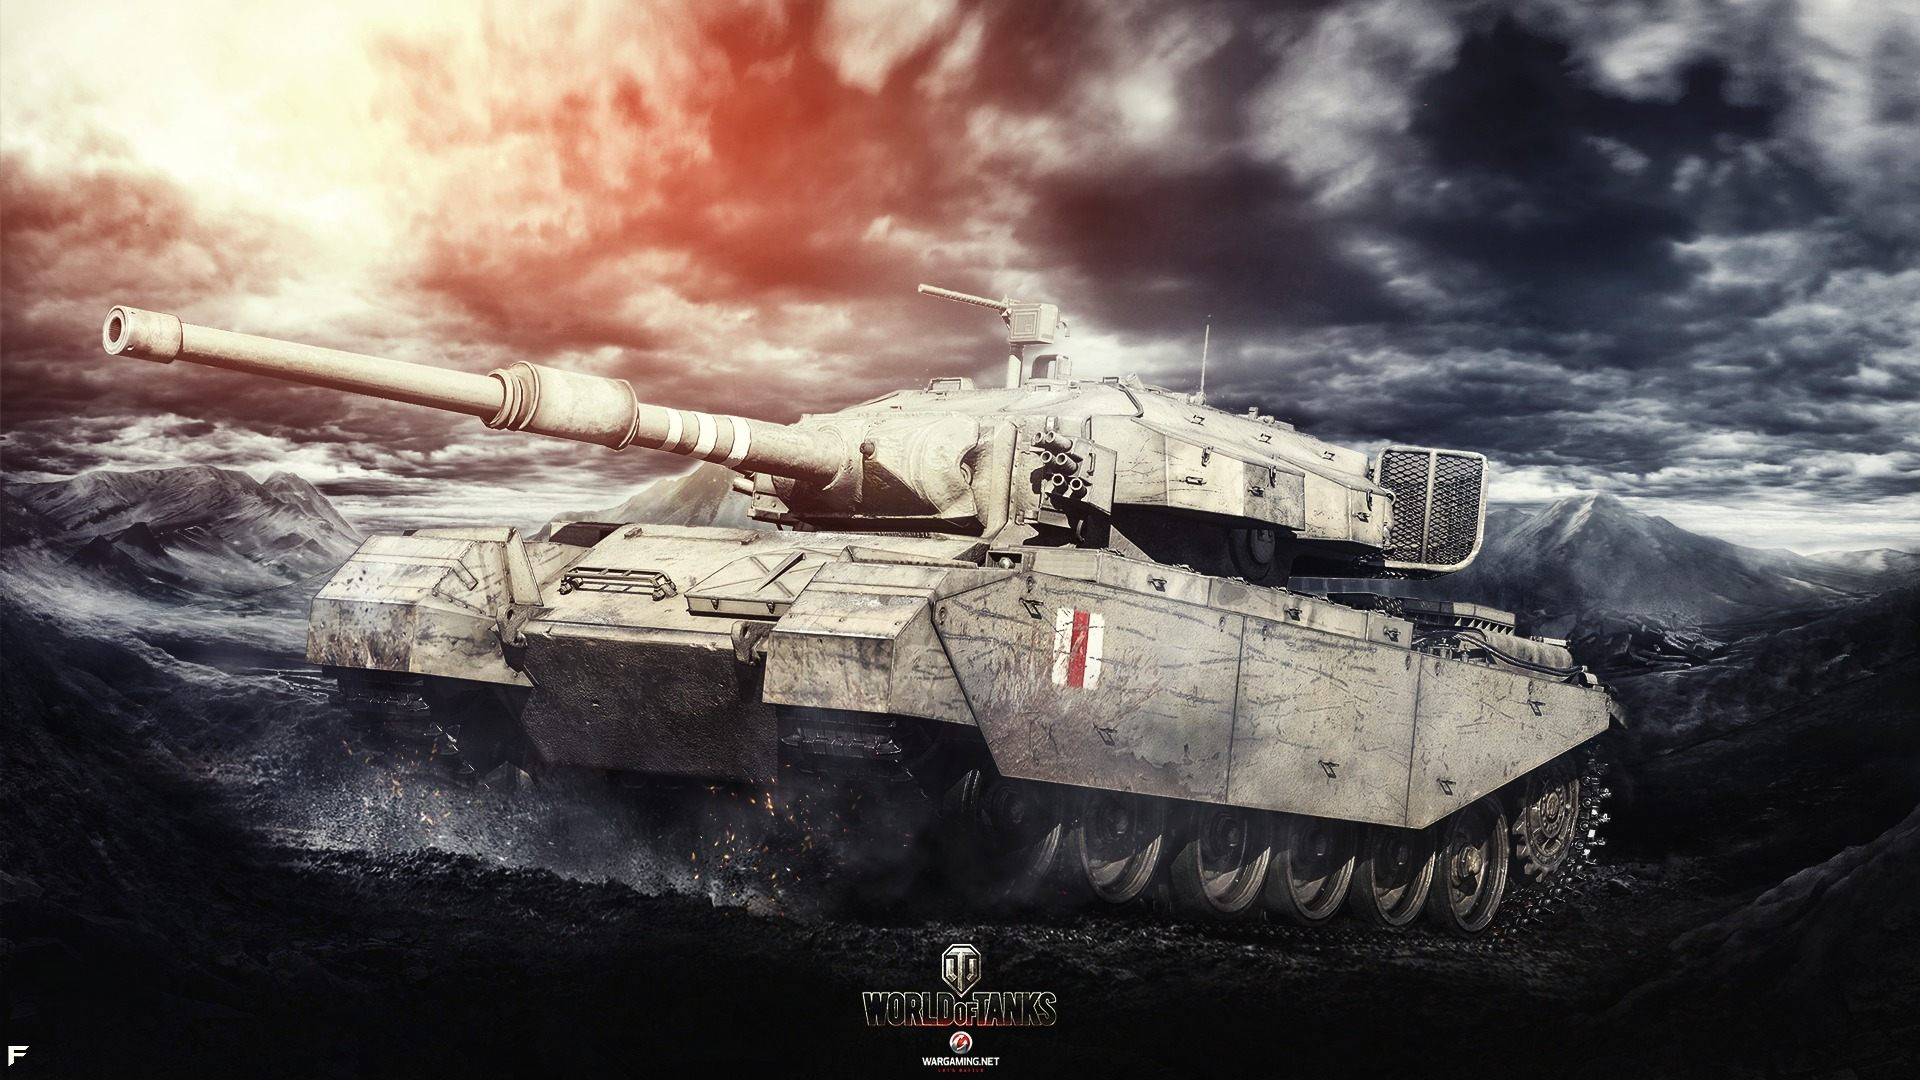 World Of Tanks Wallpaper Hd Epic Wallpaperz 1920x1080